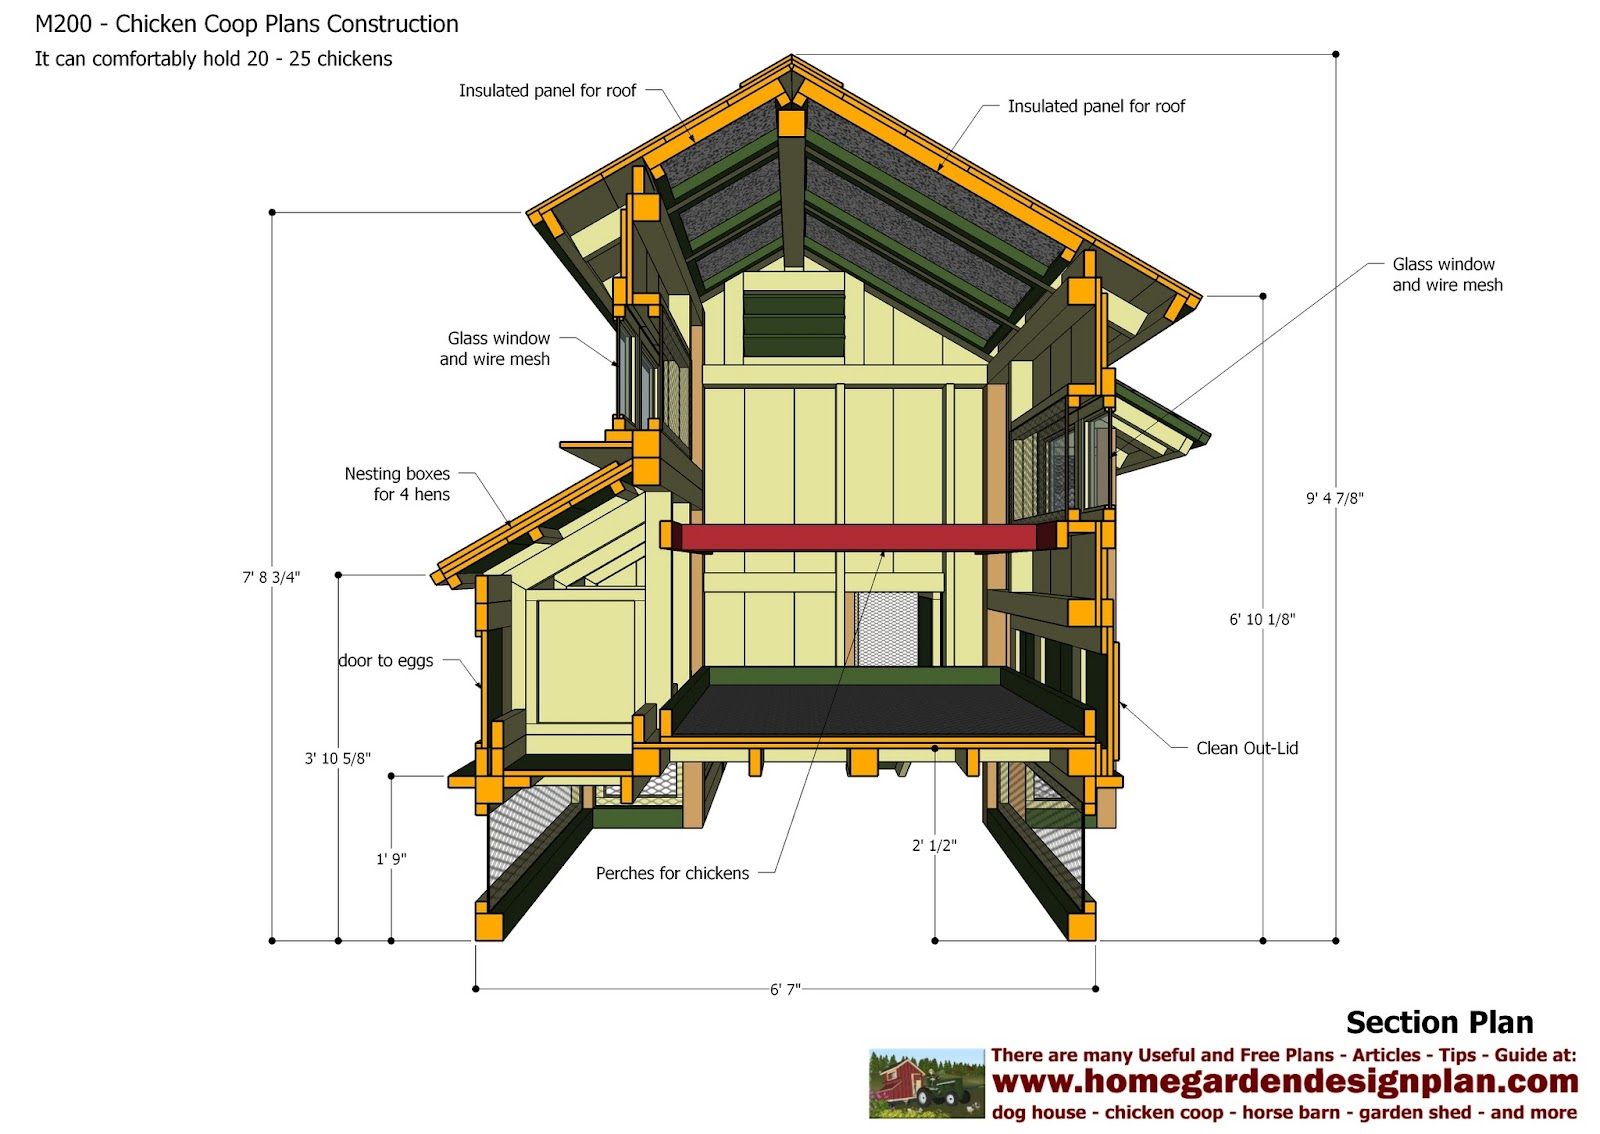 Diy chick coop chicken coop plans drawings for Free coop plans